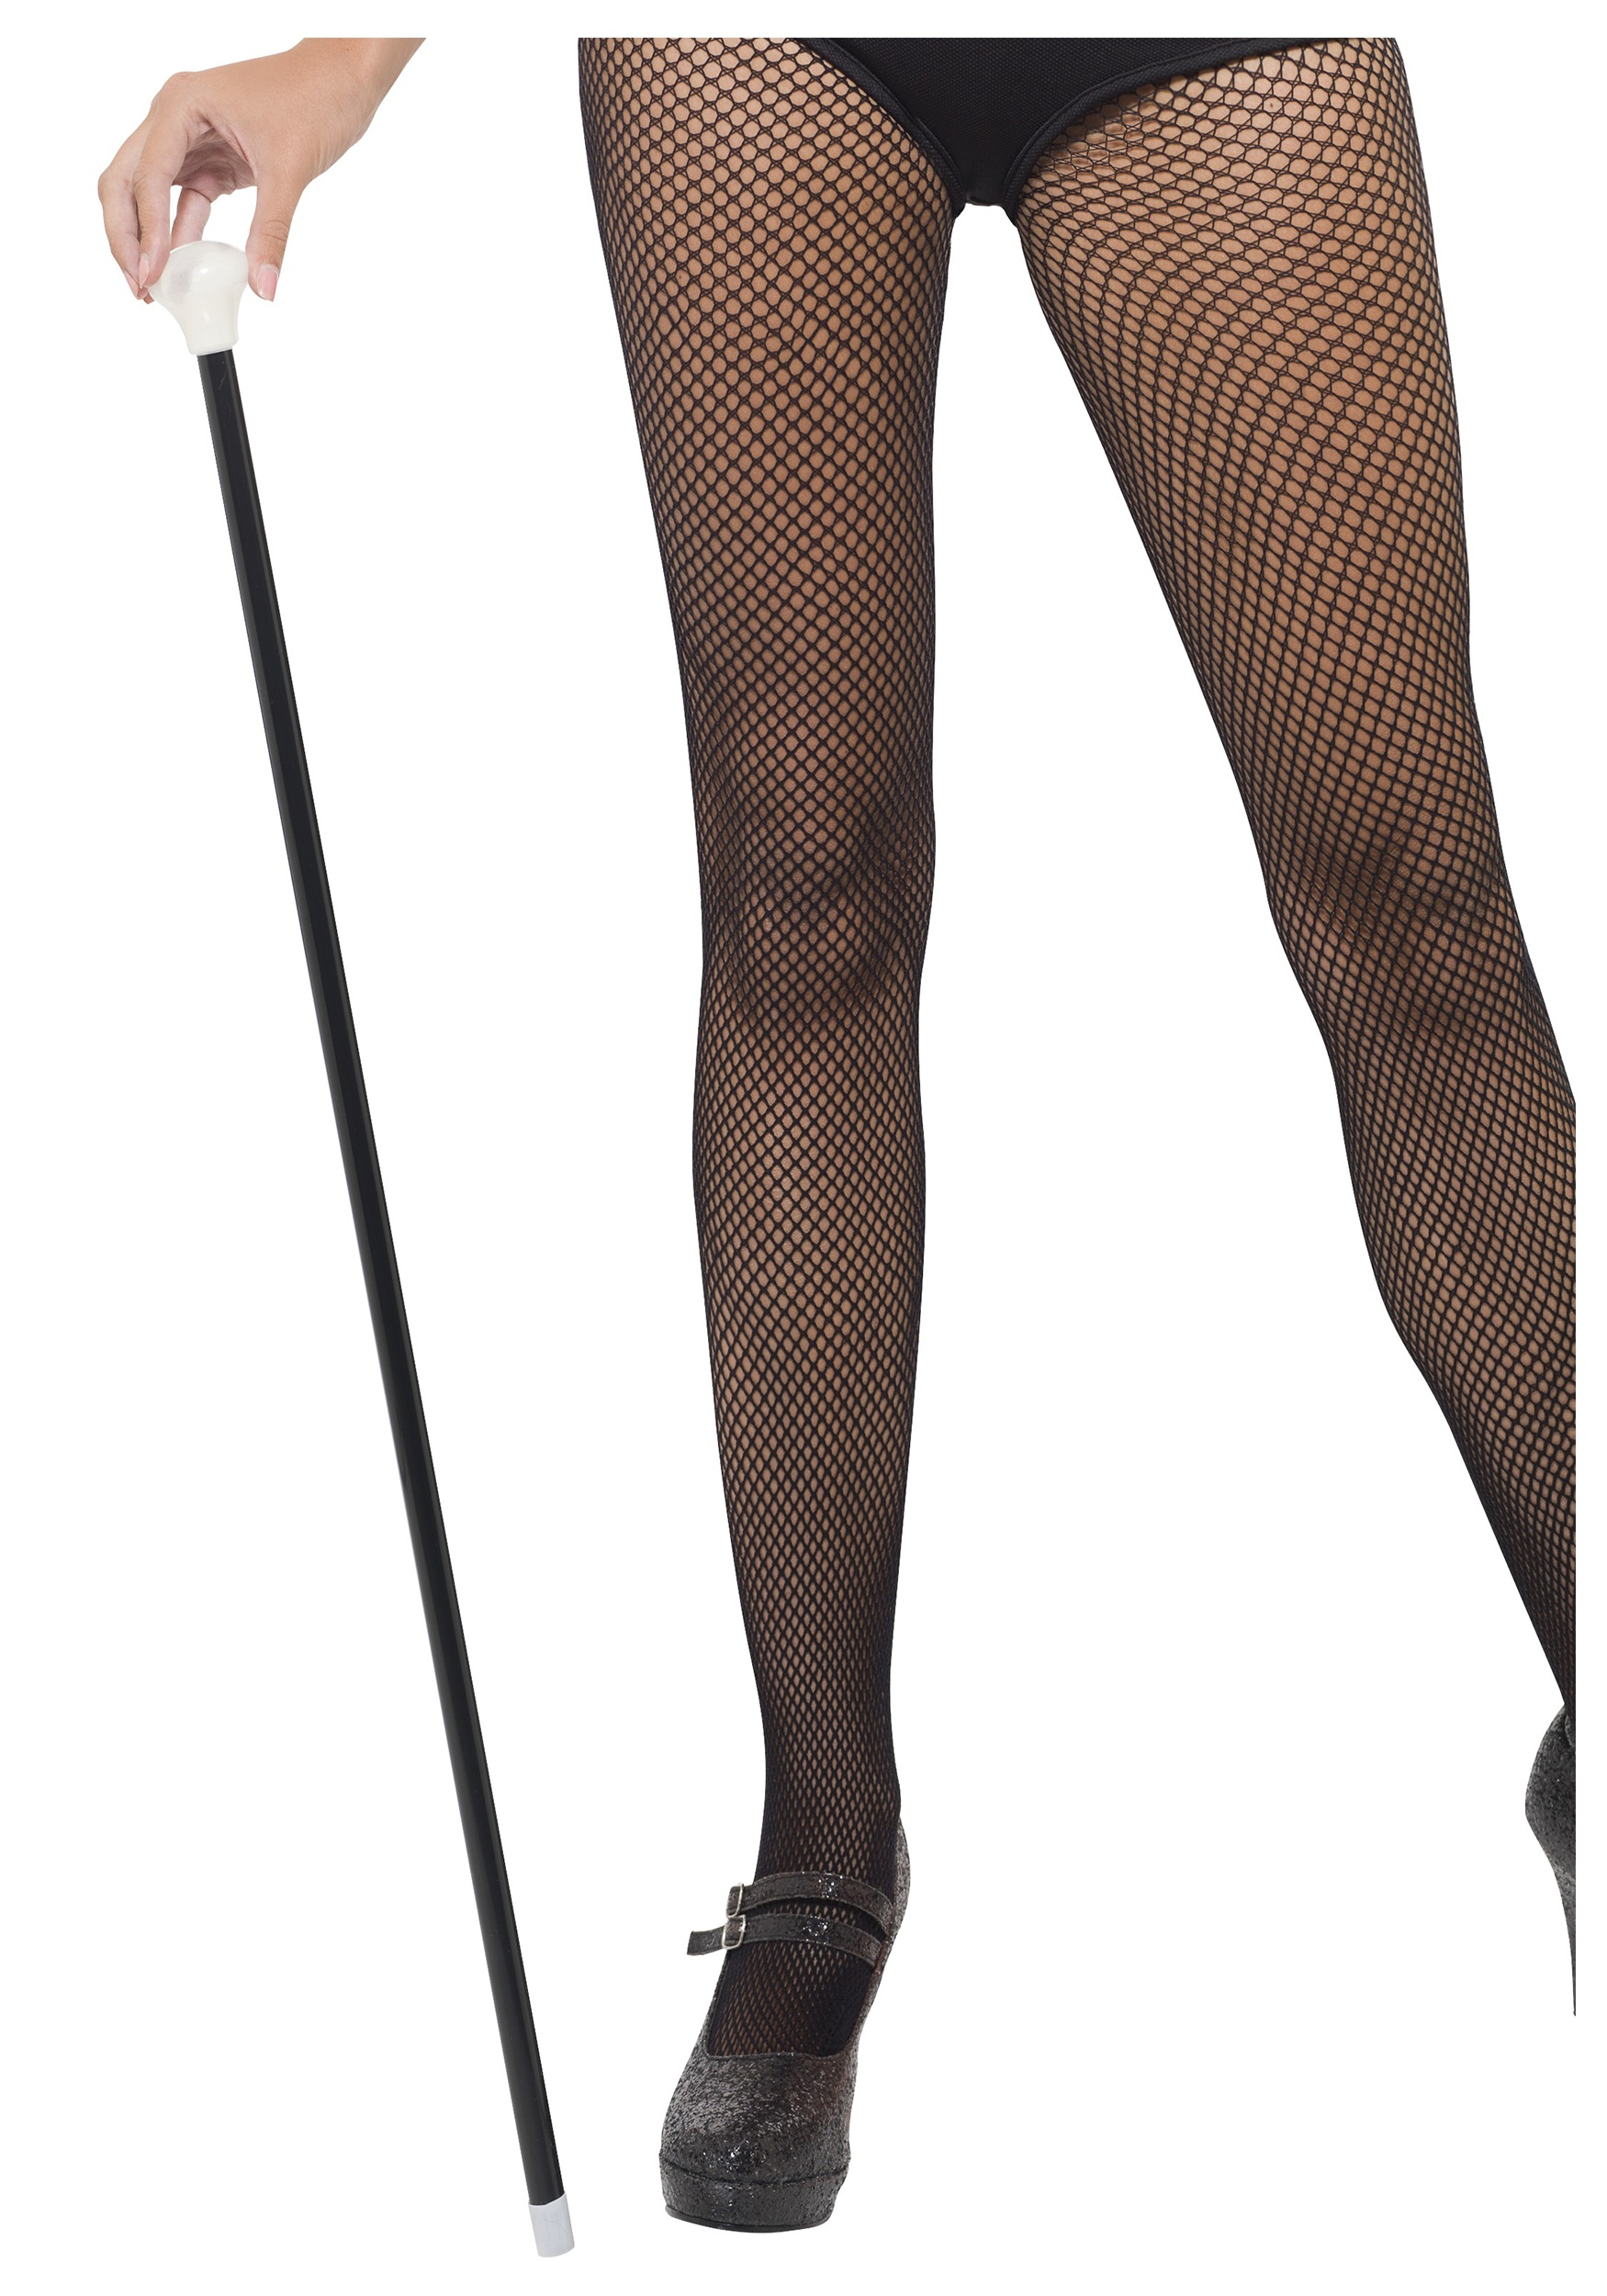 20S STYLE BLACK DANCE CANE walking theatrical ringmaster